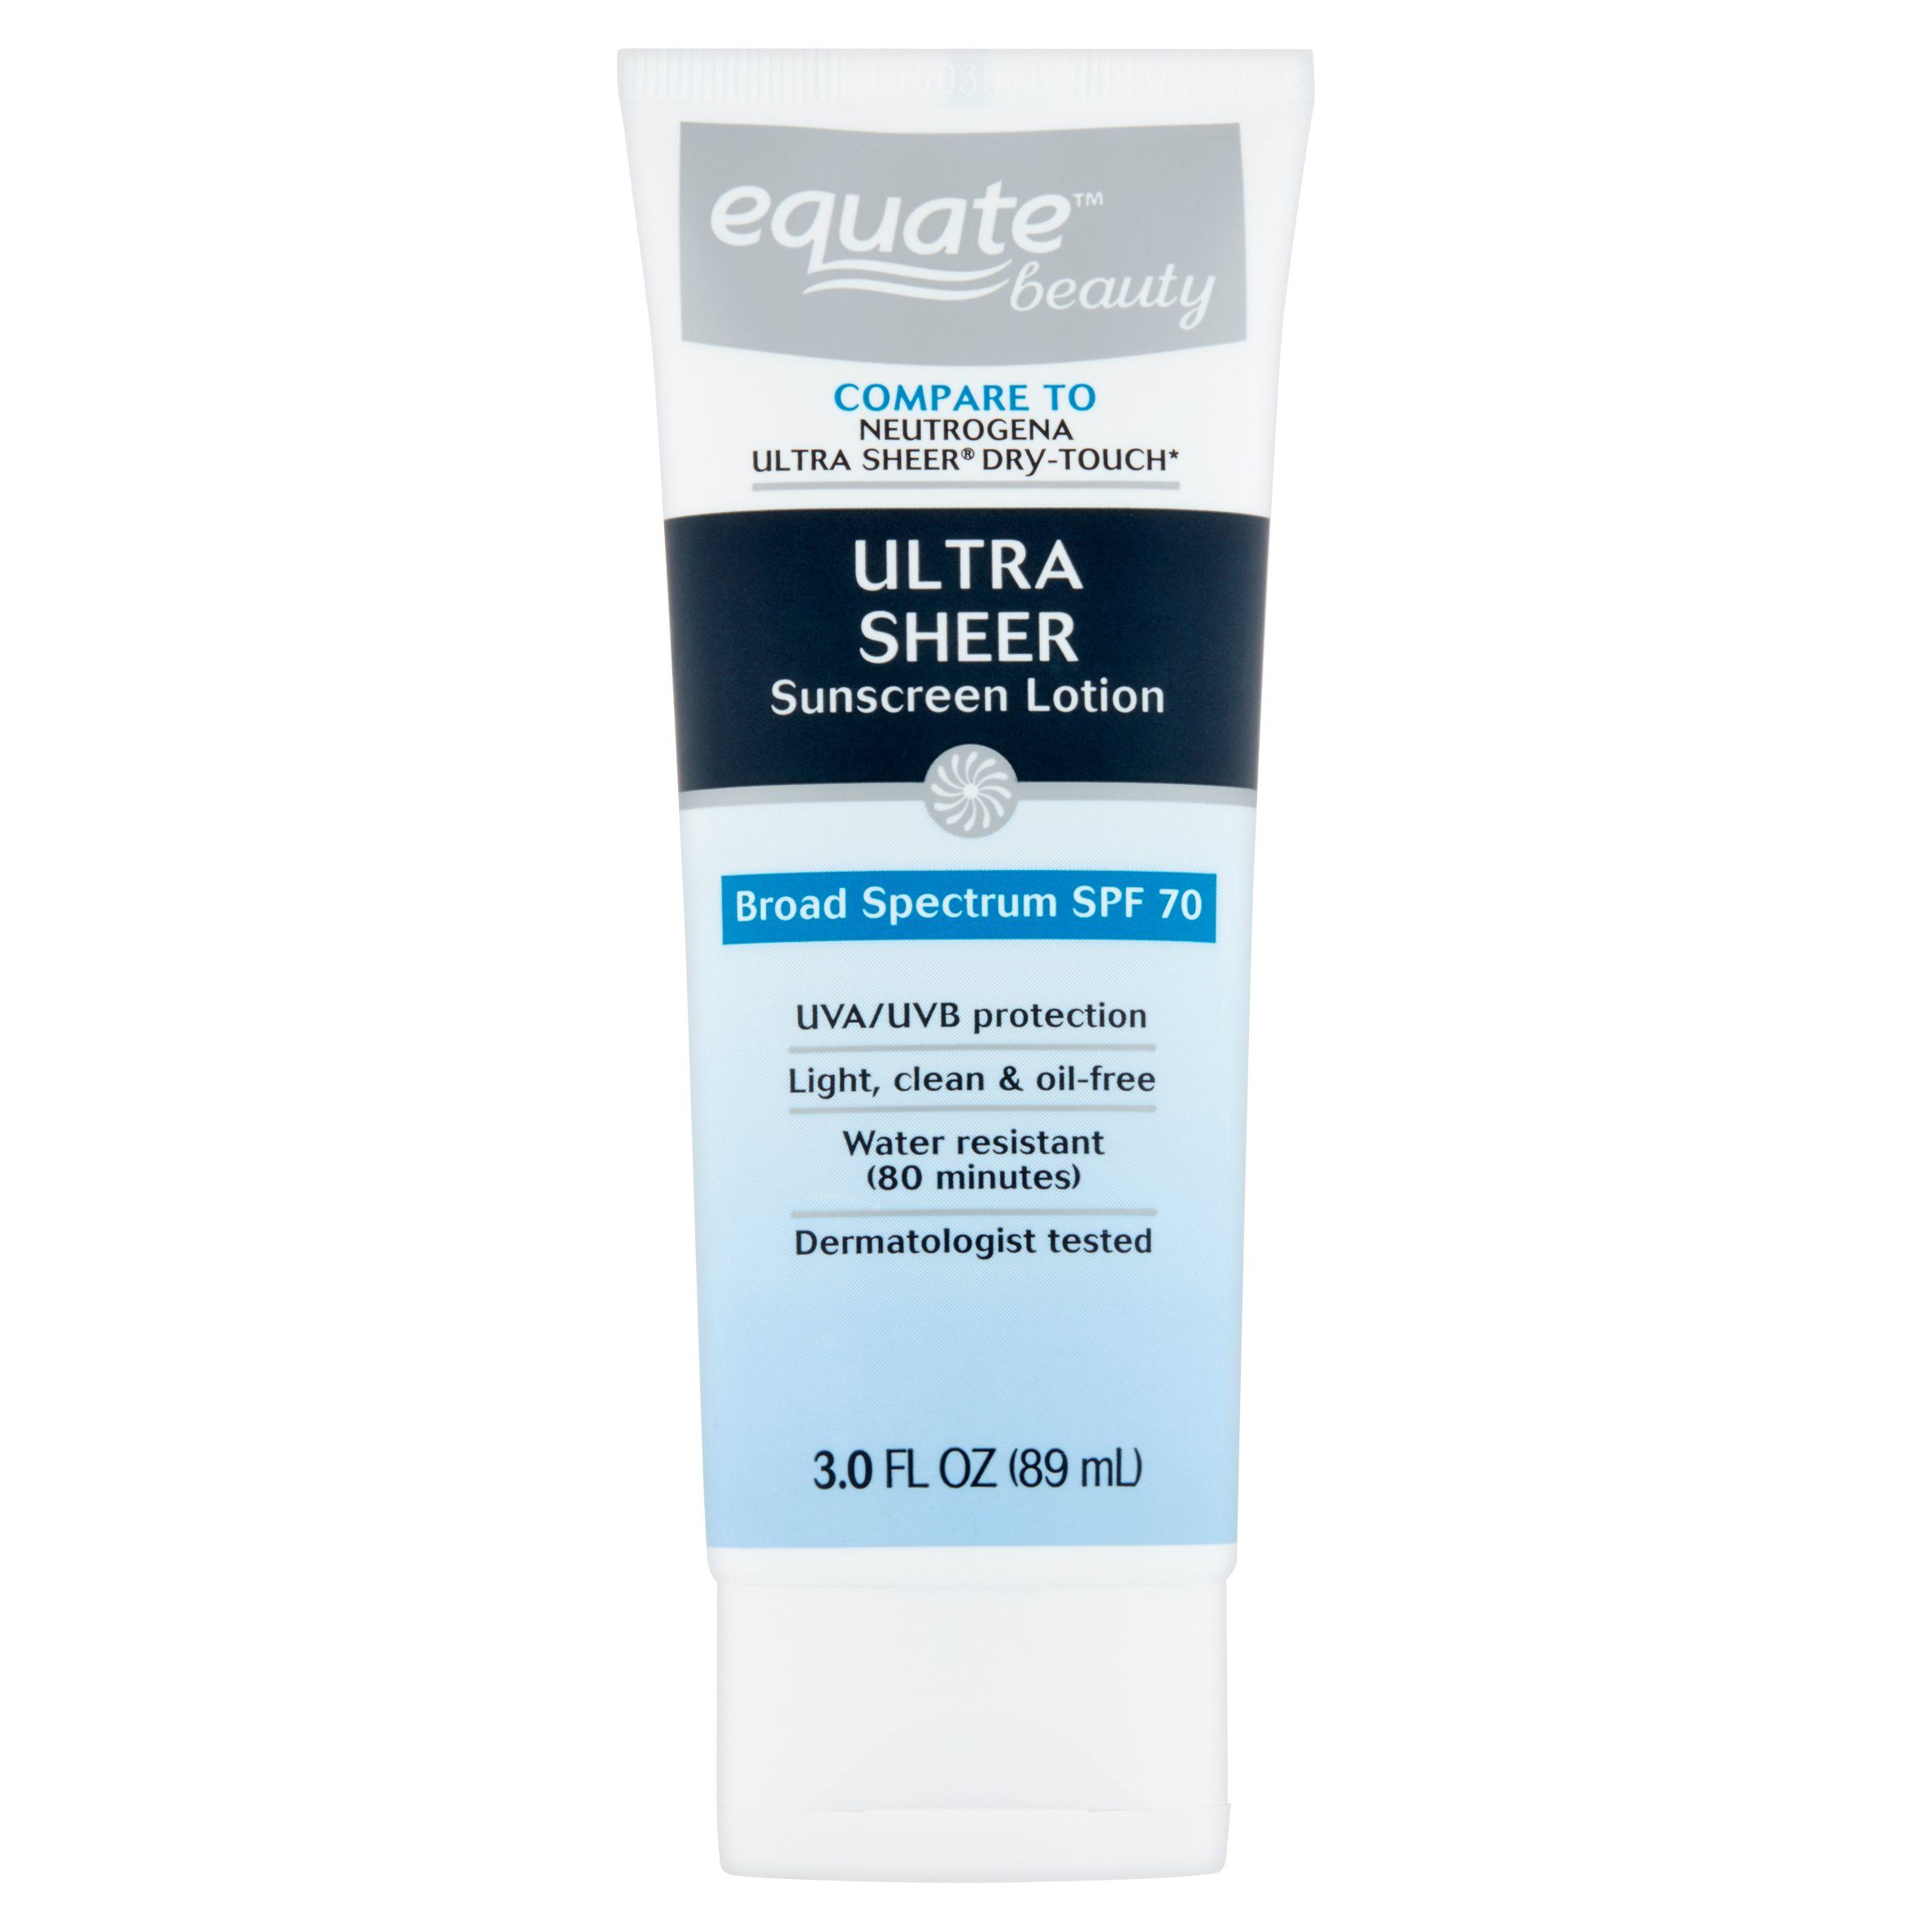 Equate Beauty Ultra Sheer Sunscreen Lotion, SPF 70, 3 Oz